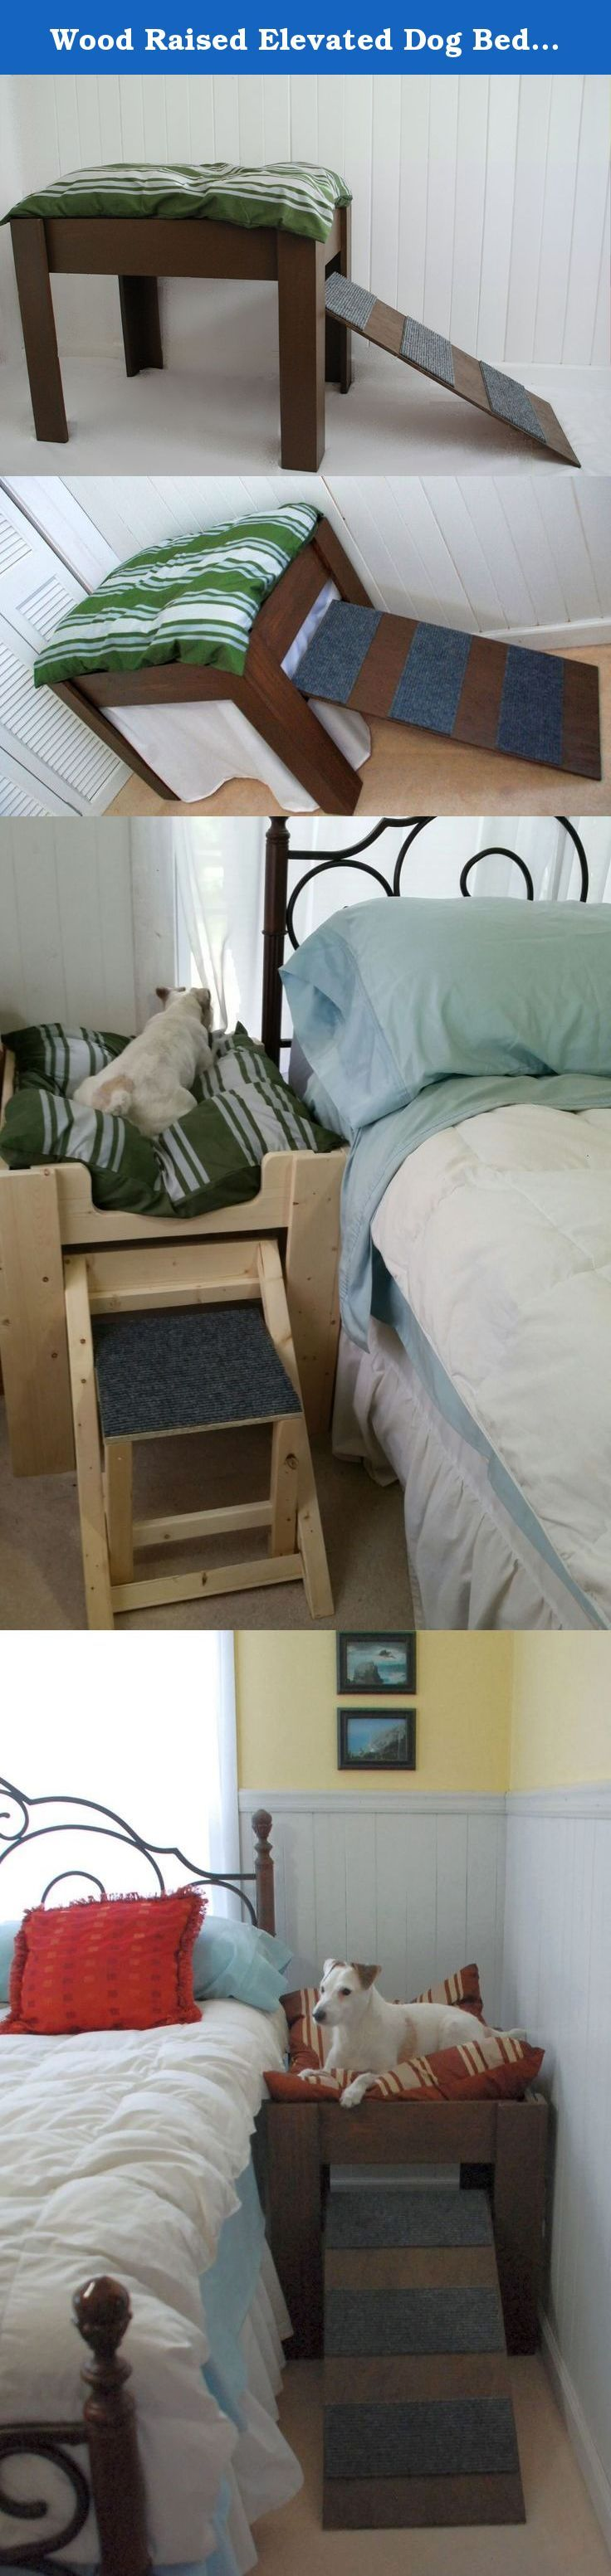 Wood Raised Elevated Dog Bed Furniture. Put Your Pet Next to You, with Ramp or Step. The idea for this bed came from our own personal needs. Our Jack Russell was taking up the bed for years. We would awaken every time he would move in and out of the covers. We weren't sure he would agree to sleeping alone (Jack Russell's can be stubborn) but he has slept in his bed beside ours since the very first night. We believe he actually enjoys having his own space. Your dog will love sleeping right...